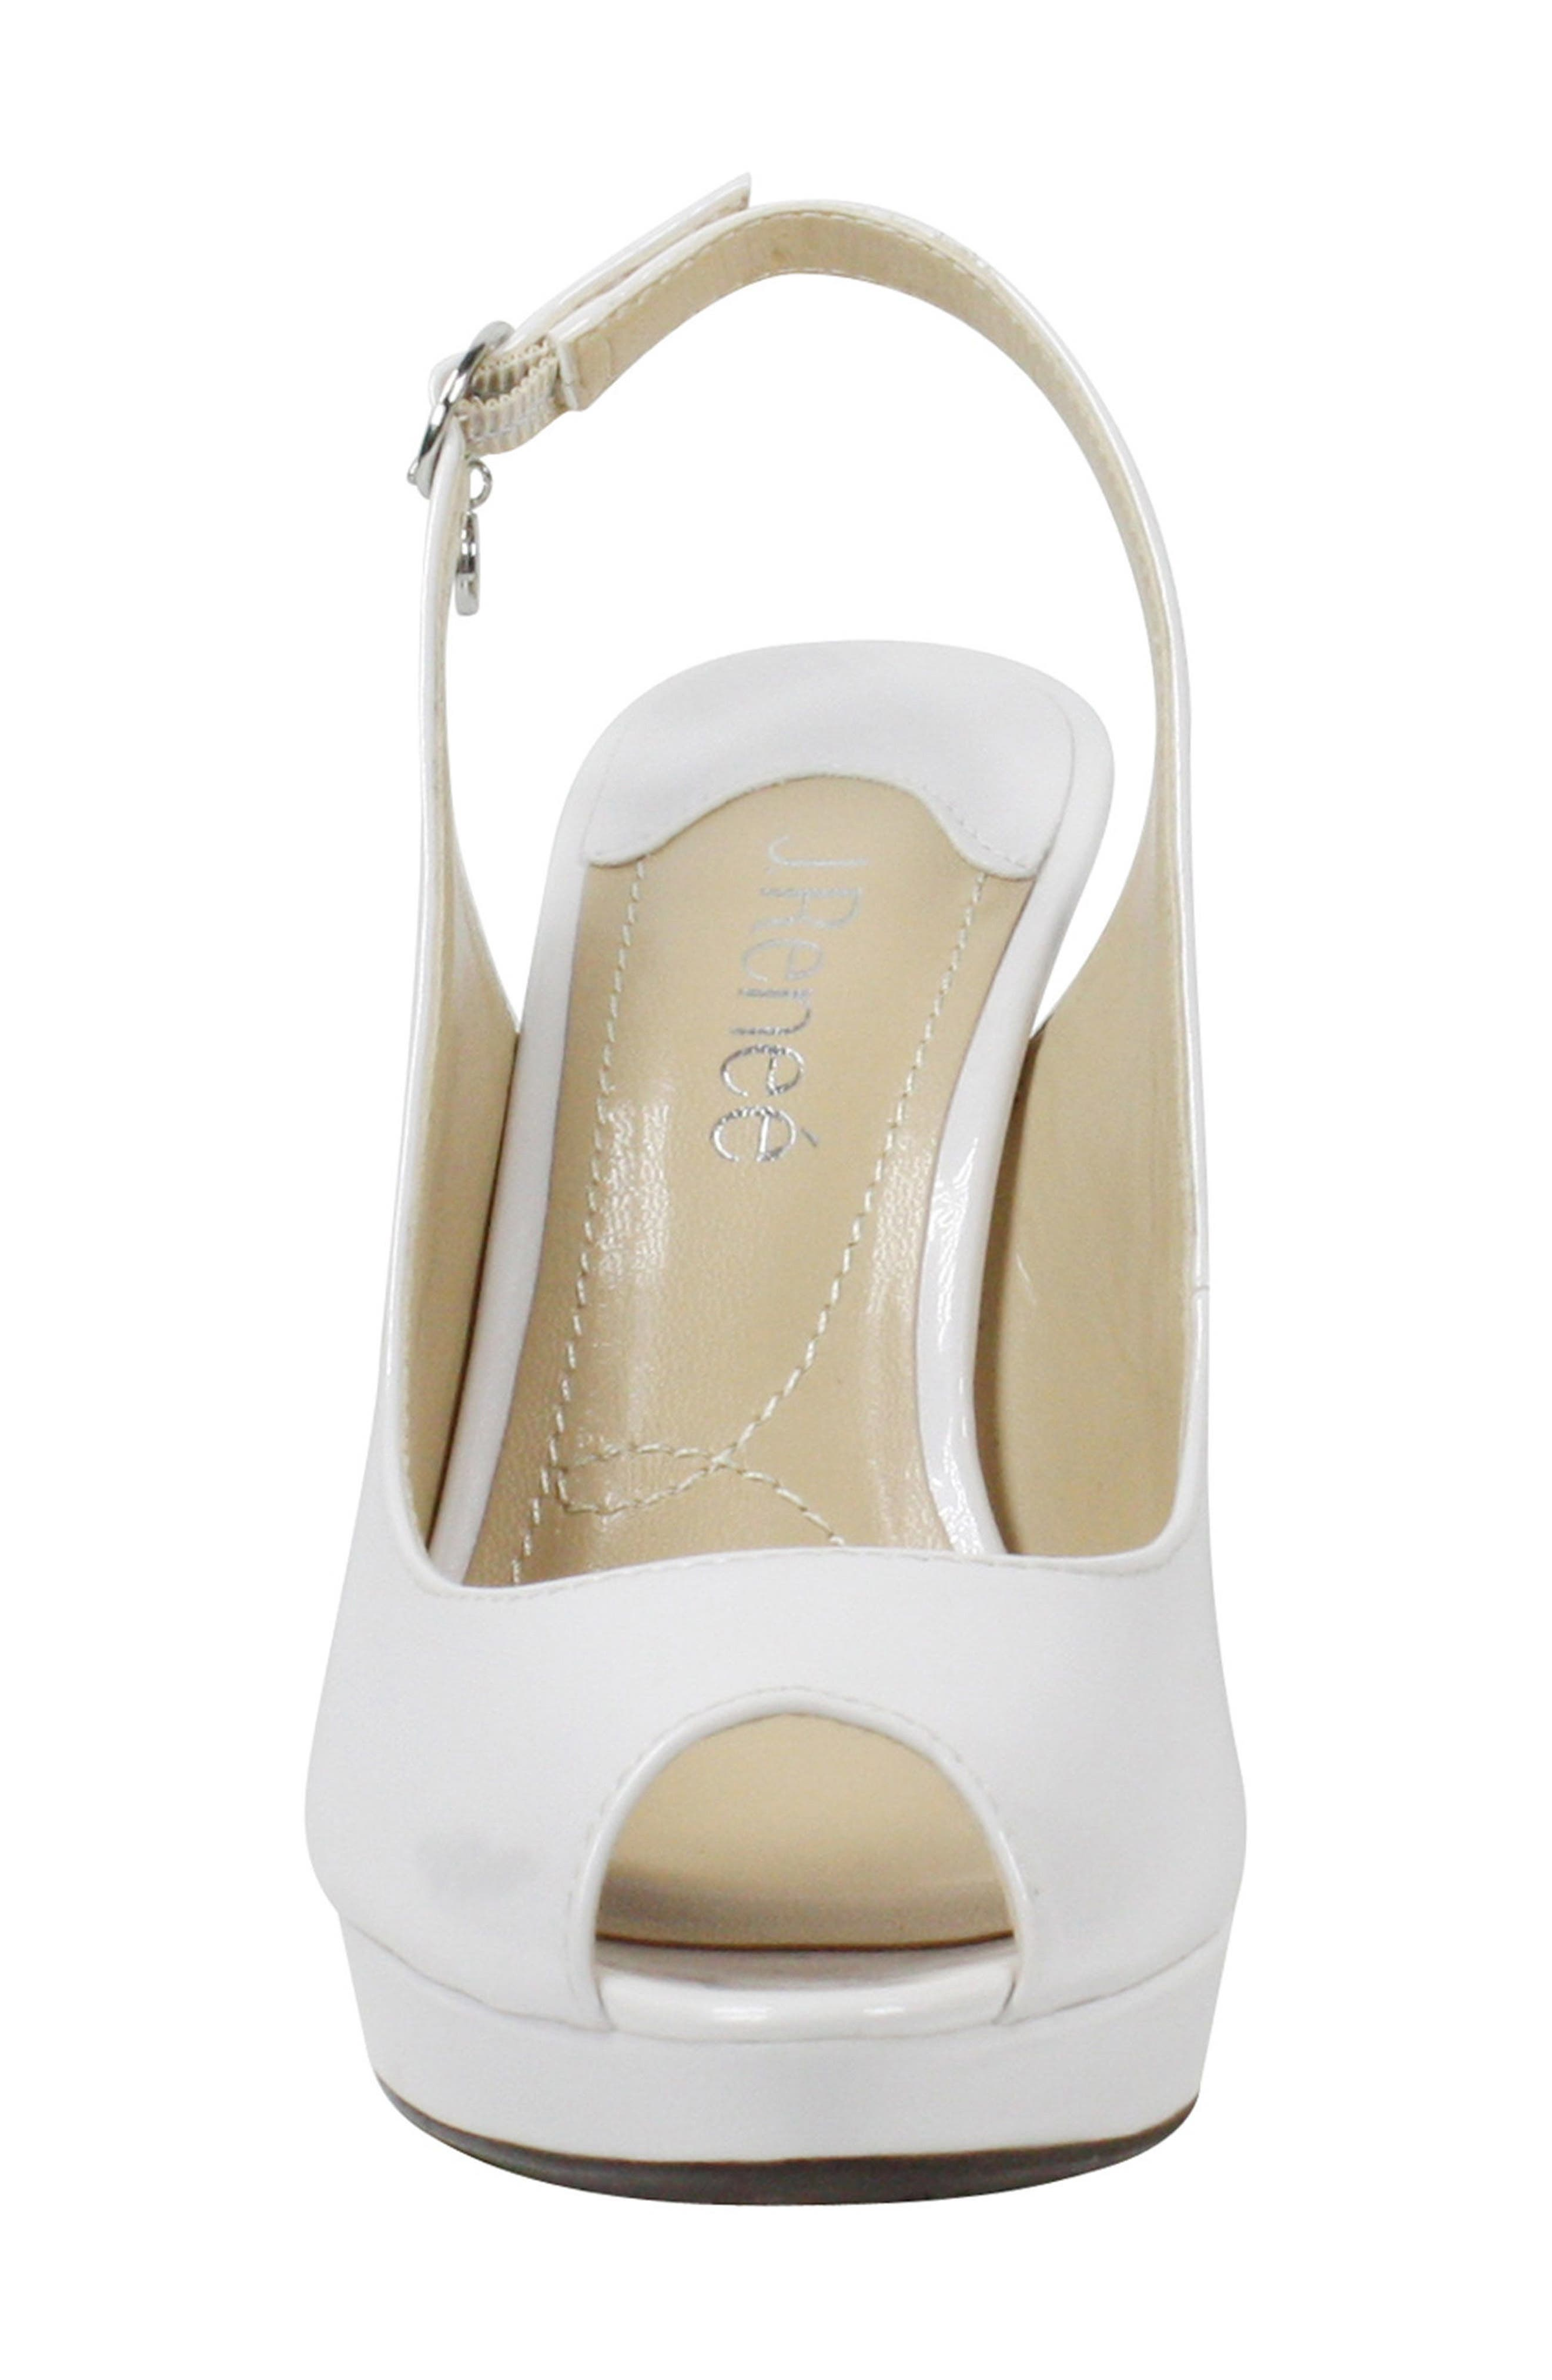 Onille Slingback Pump,                             Alternate thumbnail 4, color,                             Pearl White Faux Leather